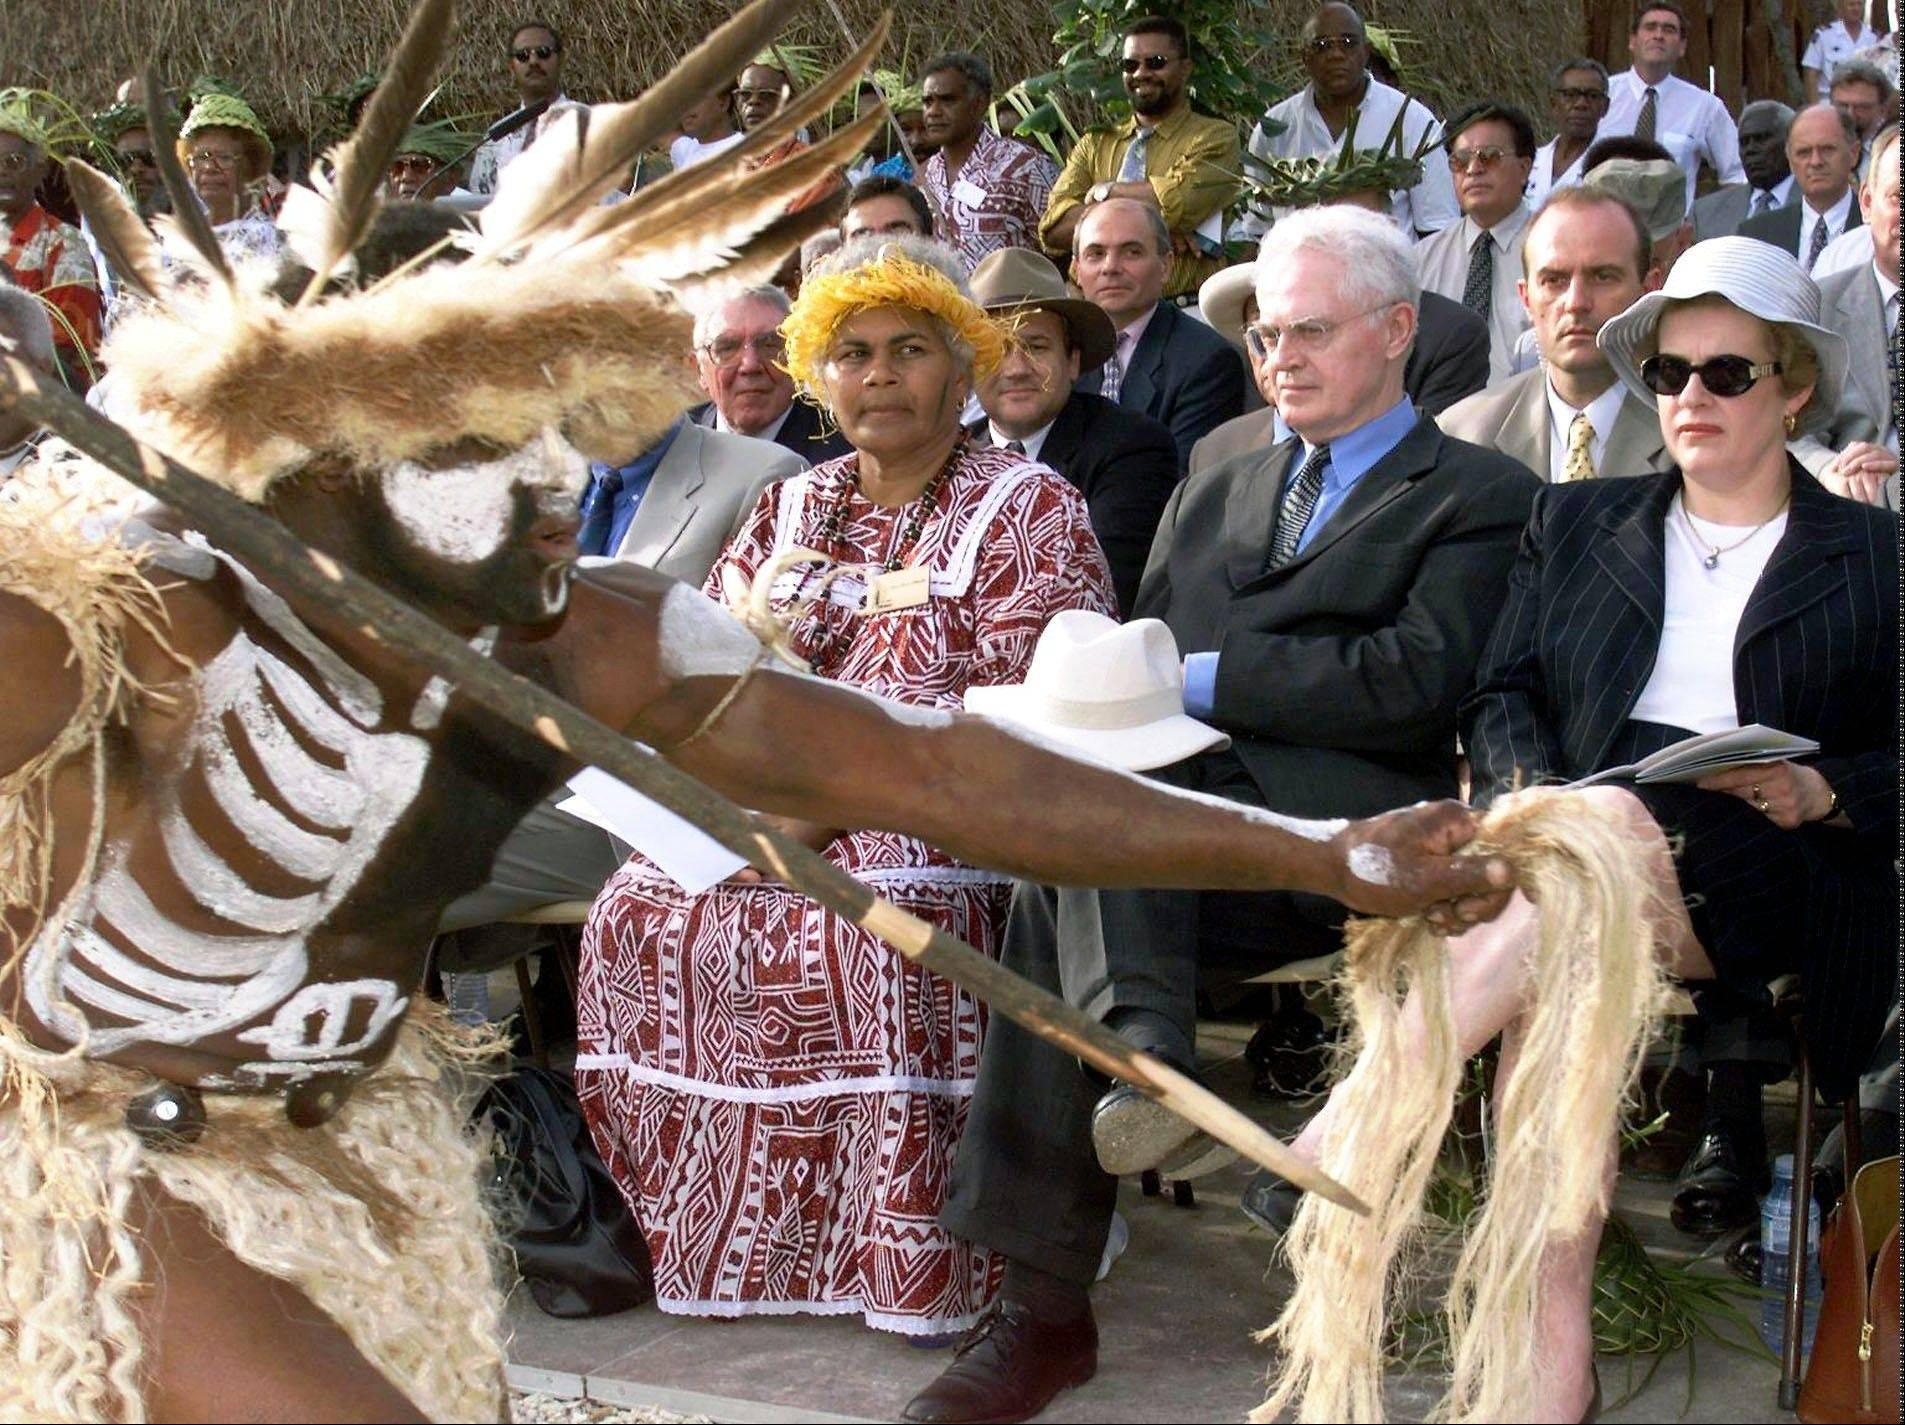 French Prime Minister Lionel Jospin, center, and Culture Minister Catherine Trautman, right, watch dancers during the inauguration of the Jean-Marie Tjibaou cultural center in Noumea, the capital of the French Pacific islands of New Caledonia. At Jospin's right is the widow of Tjibaou, independence leader assassinated in 1989.